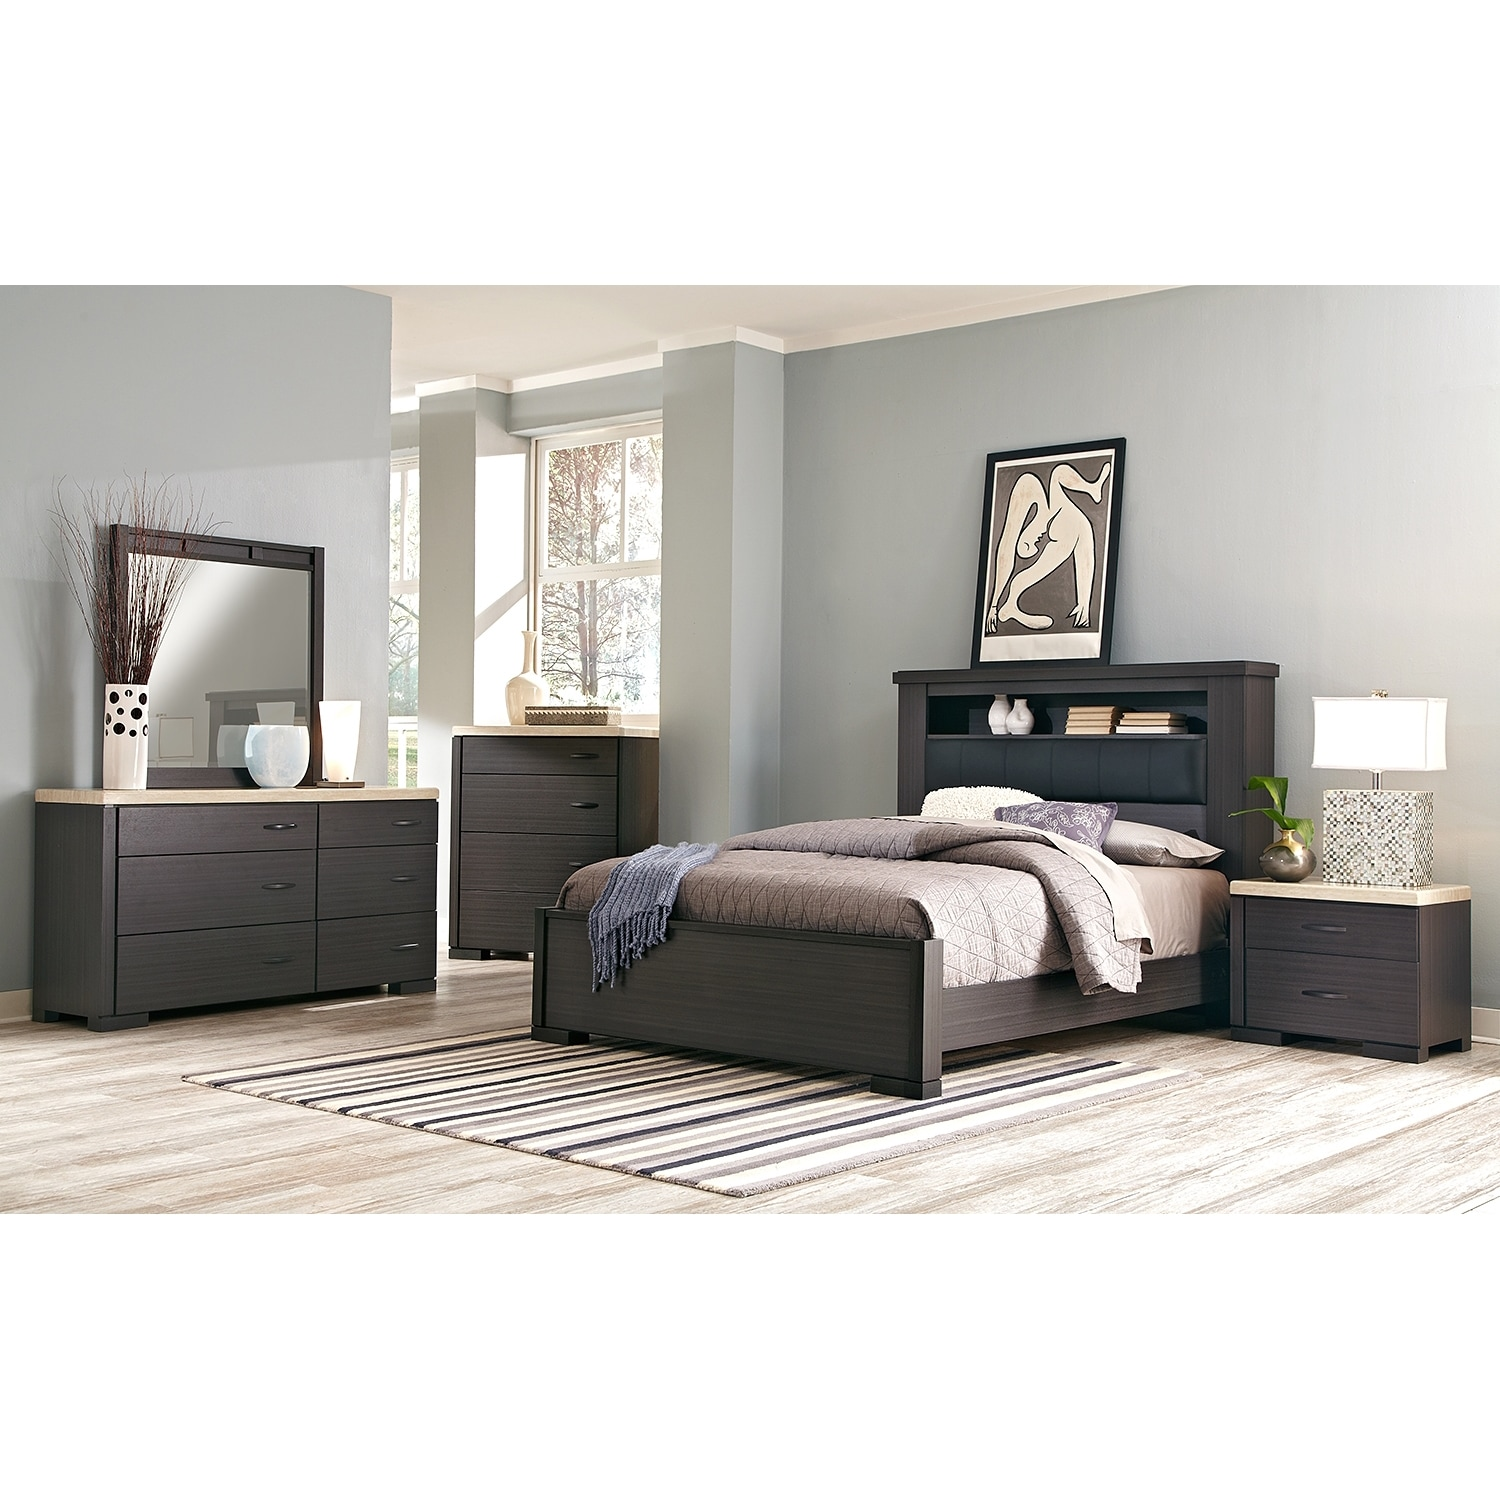 inside sets including value set vibrant city columbus sectionals inspirations ideas attractive furniture bedroom